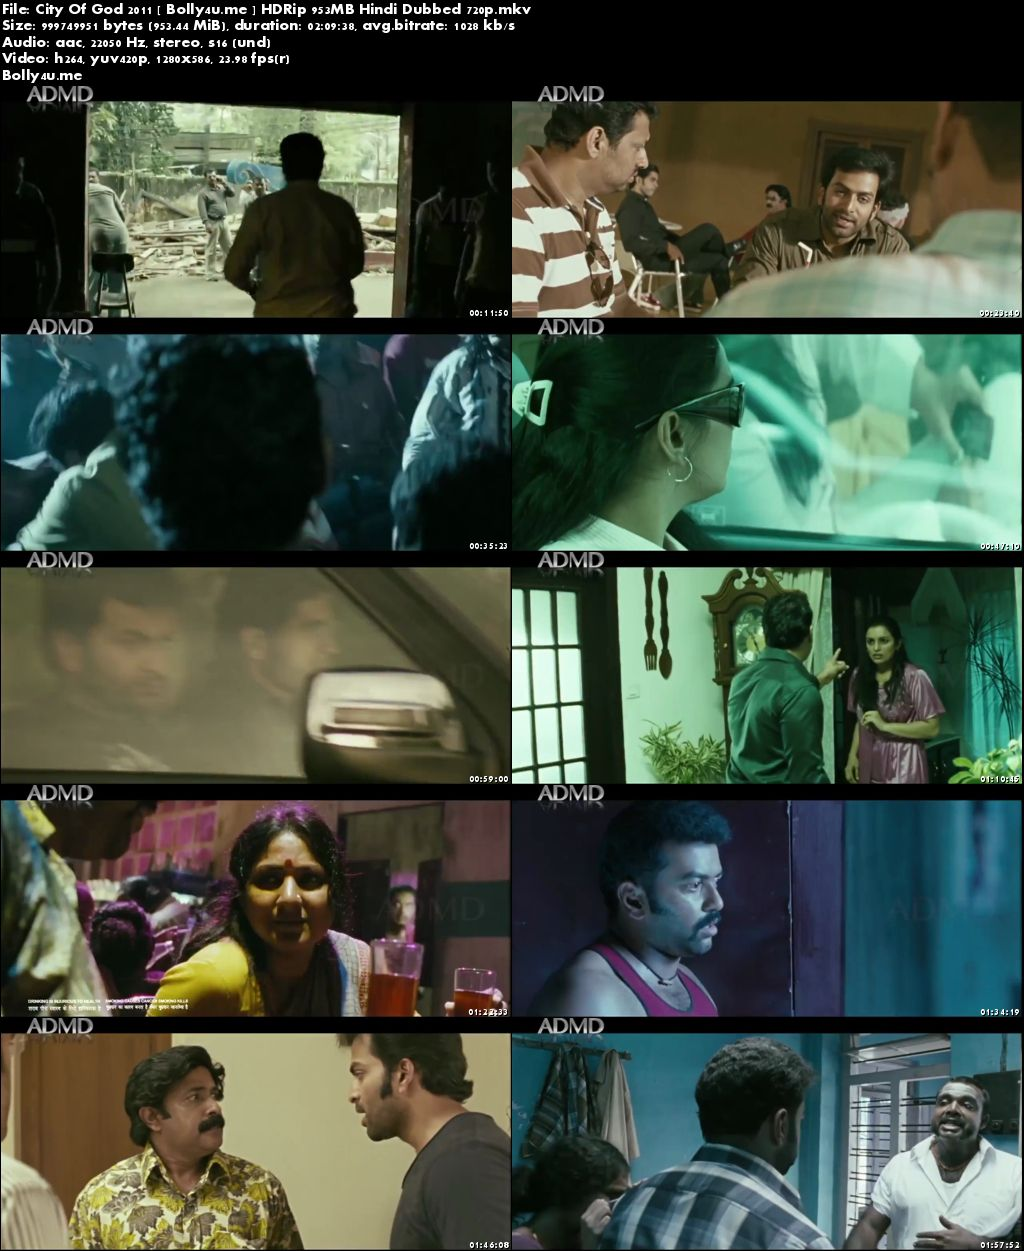 City Of God 2011 HDRip 350MB Hindi Dubbed 480p Download